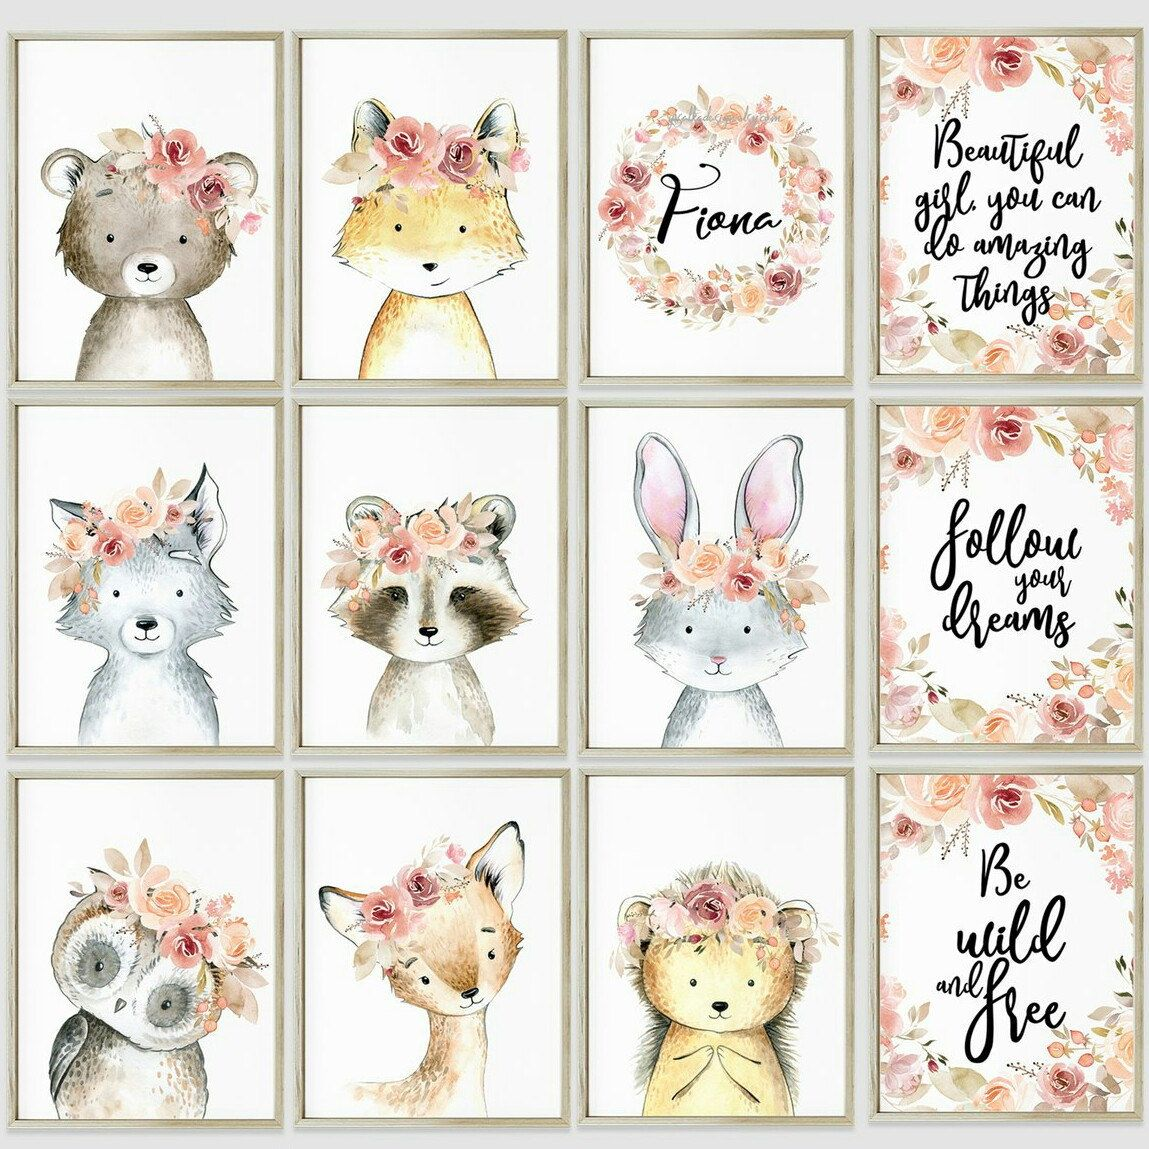 BO HO Dreamcatcher Nursery prints// SET//MANY SIZES A4 //A3// 8 X 10 INCHES//Girls